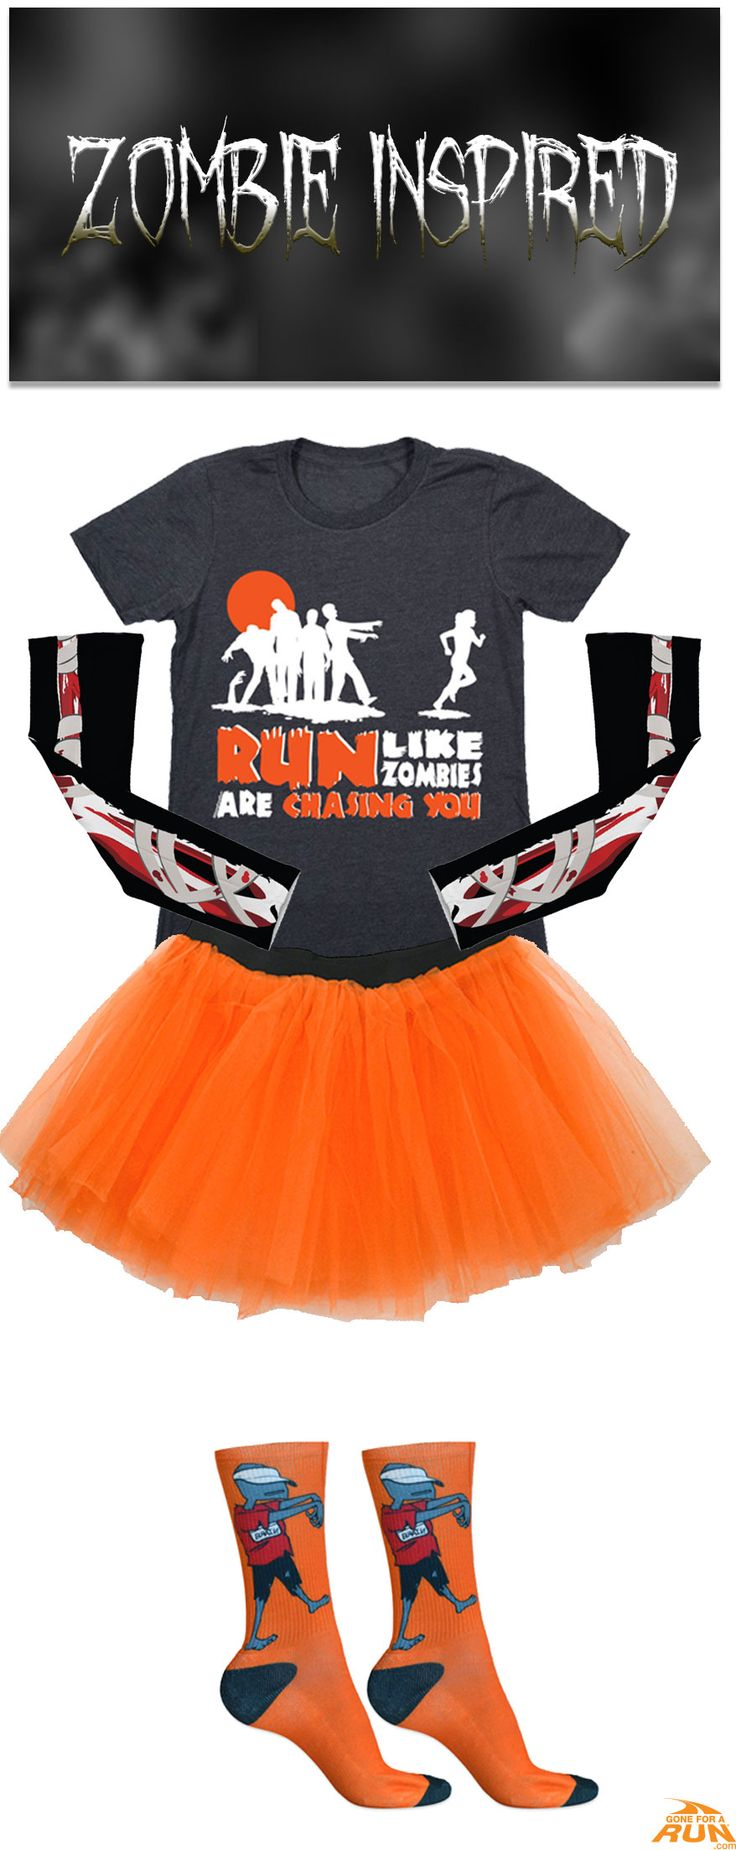 Make up your own #costume, or check out one of our original ideas! Runners can outrun zombies, but what if zombies could run?! The world would be doomed, but it would make one awesome costume! Leave your competition confused and terrified this Halloween with our Women's #zombie inspired Halloween runner's costume! Get in a #spooky fun mood with our #Halloween inspired running apparel! From shirts to socks and more, you'll find something to suit you and your running friends haunted moods!